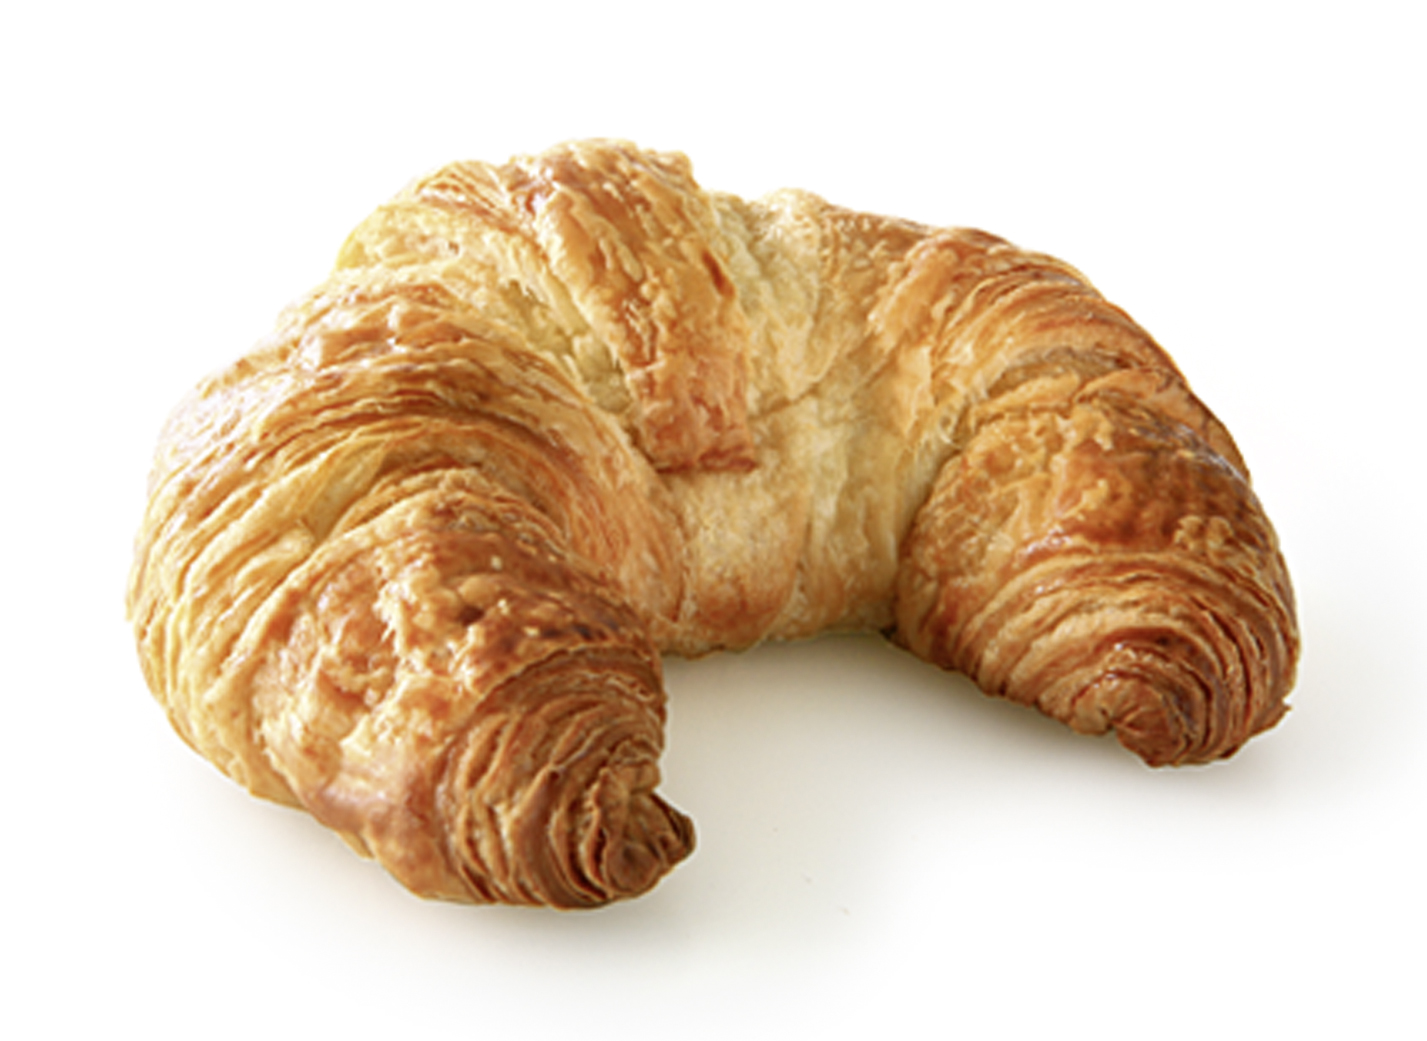 Butter-Croissant - Dough pastry with 20% butter and egg